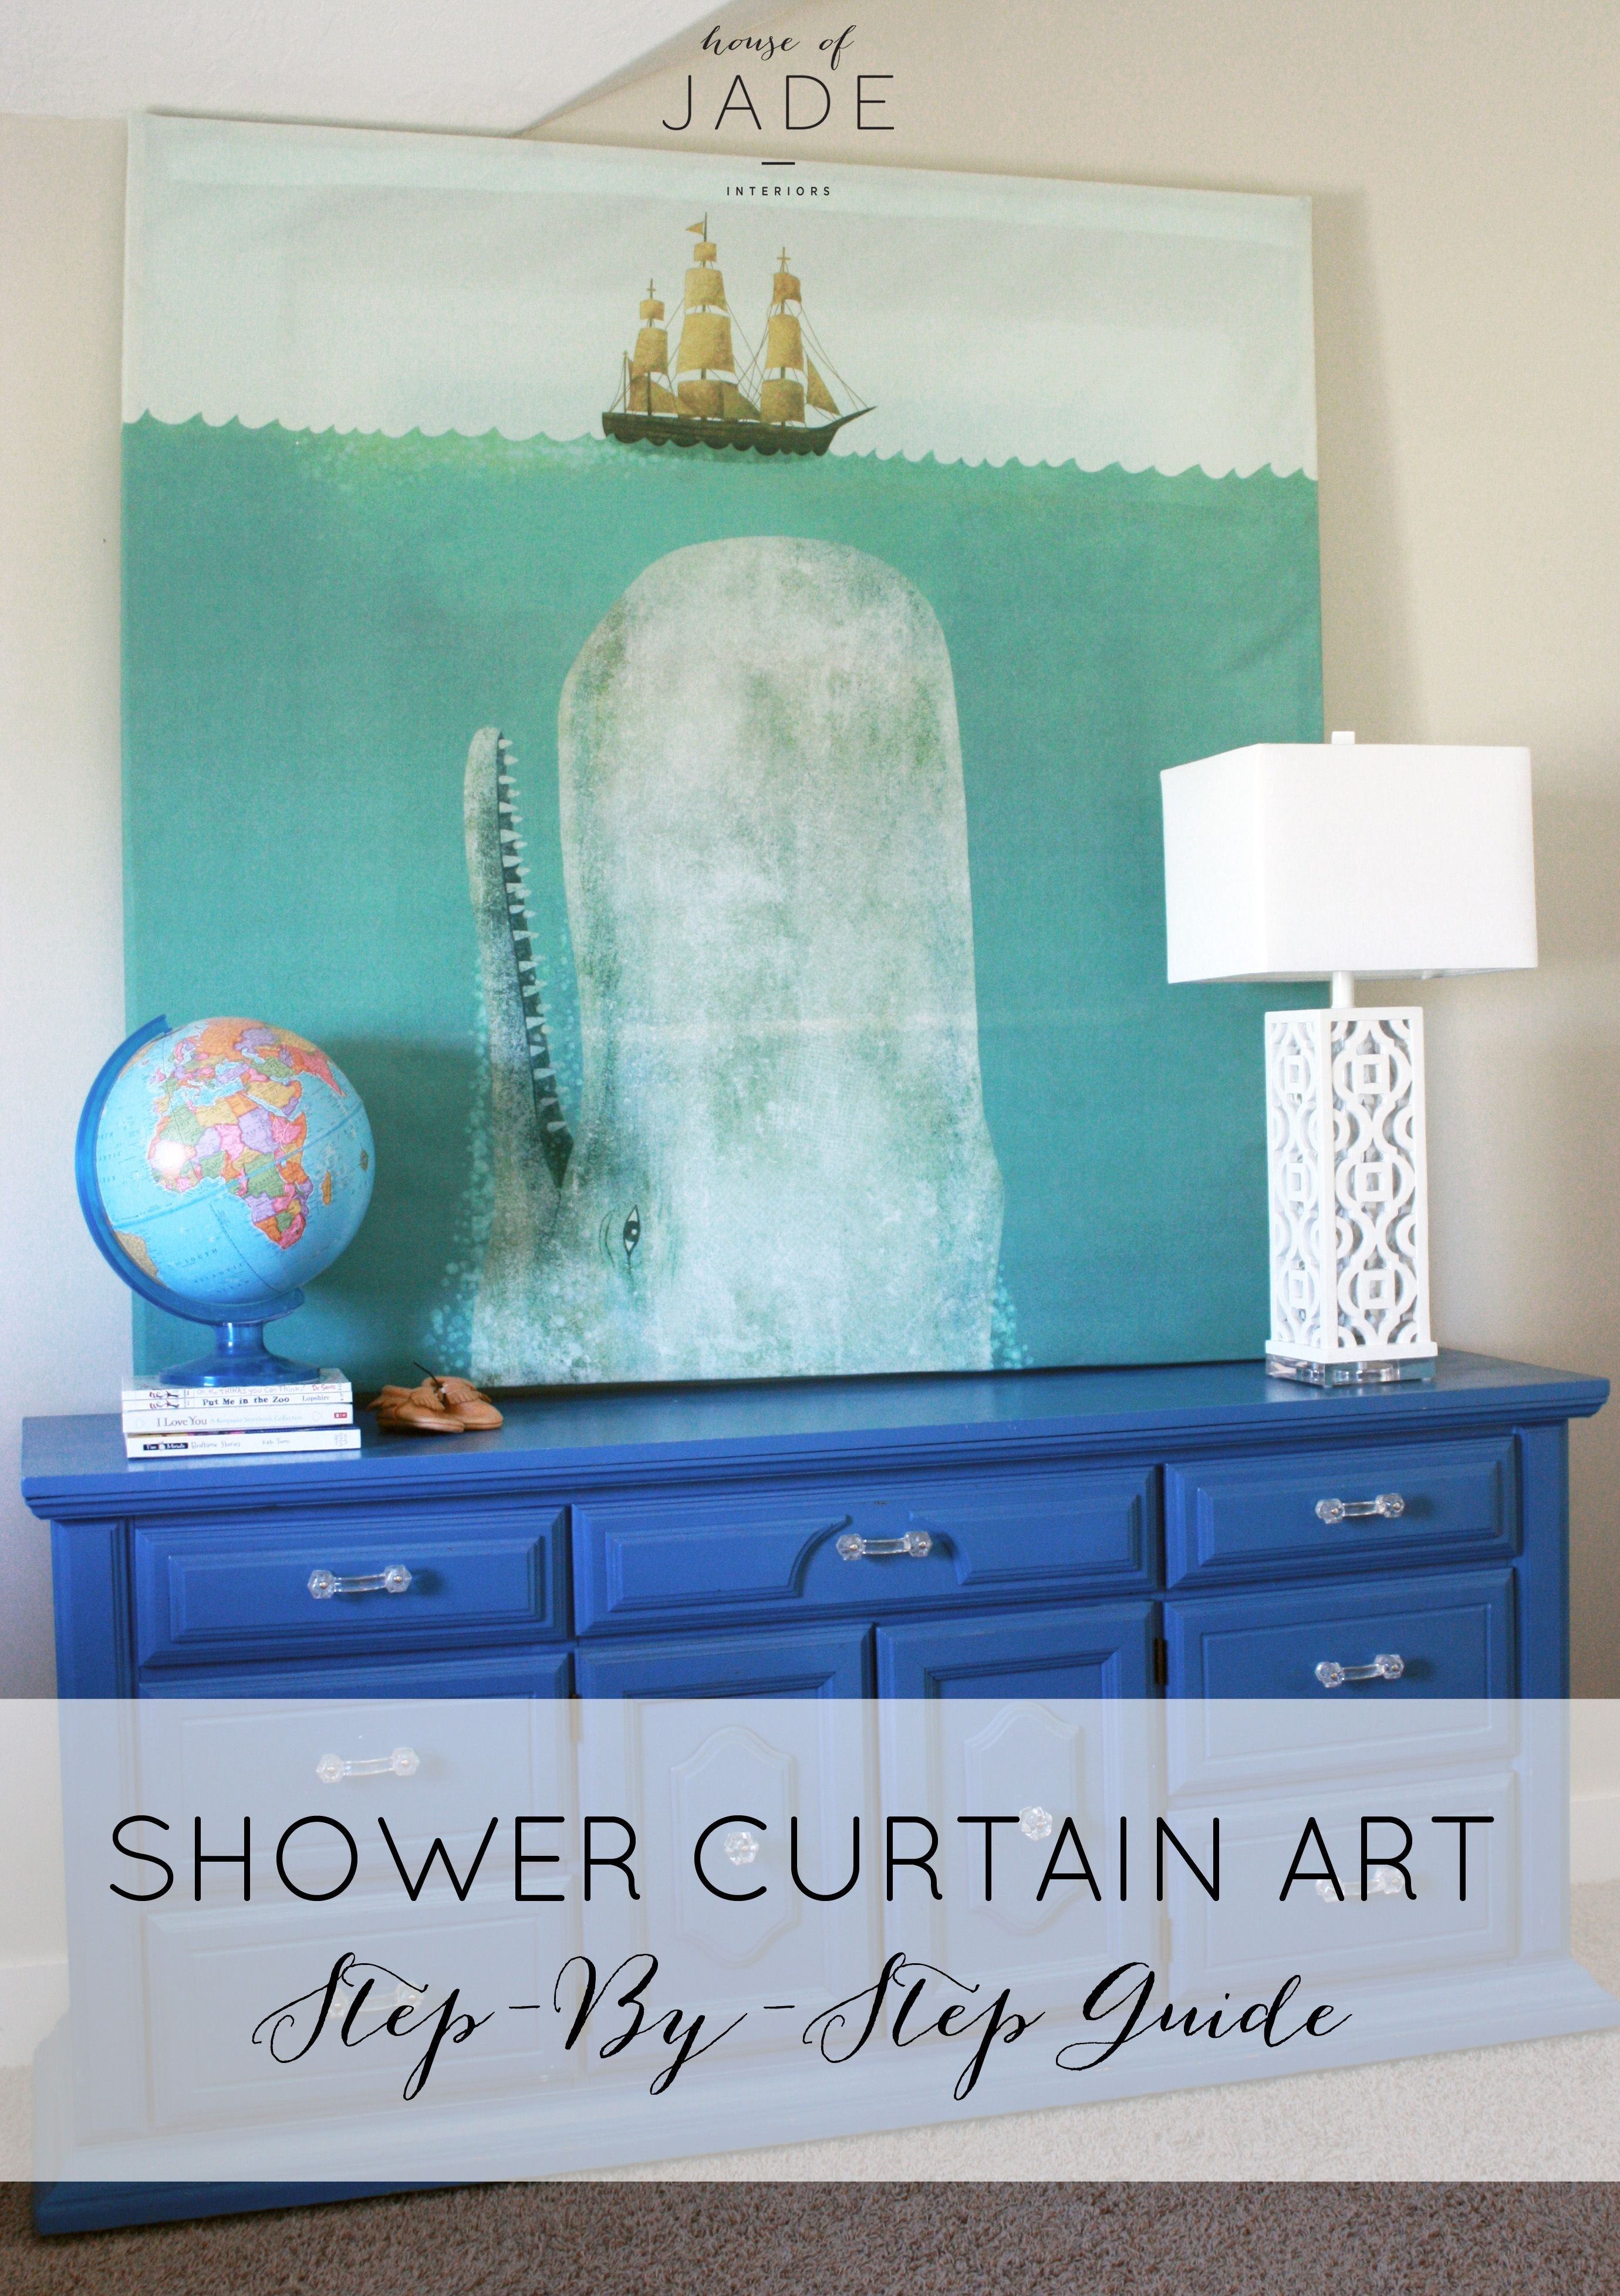 Diy Shower Curtain Art3 | Make It At Home | Pinterest | Diy Shower With Latest Shower Curtain Wall Art (View 6 of 20)